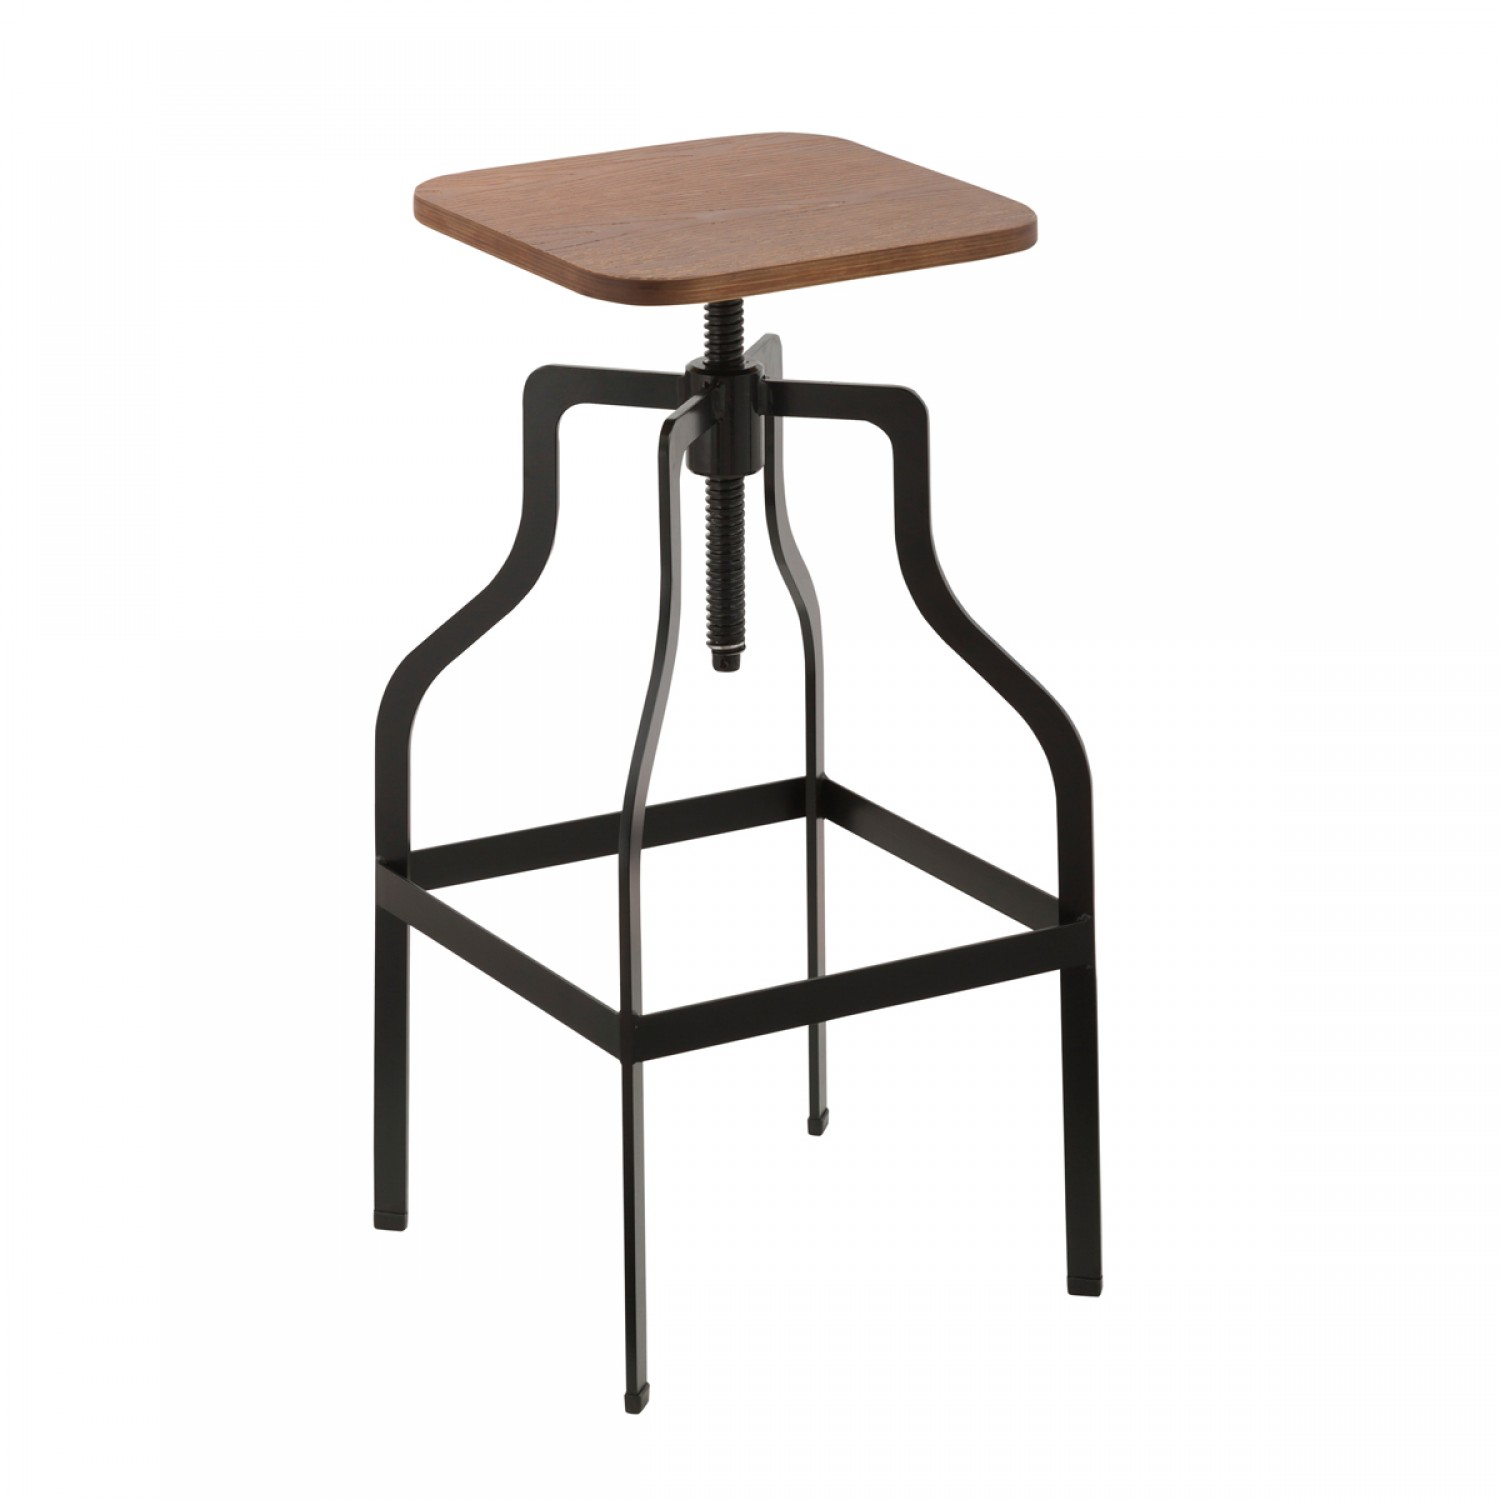 tabouret de bar vintage carr bois koya design. Black Bedroom Furniture Sets. Home Design Ideas